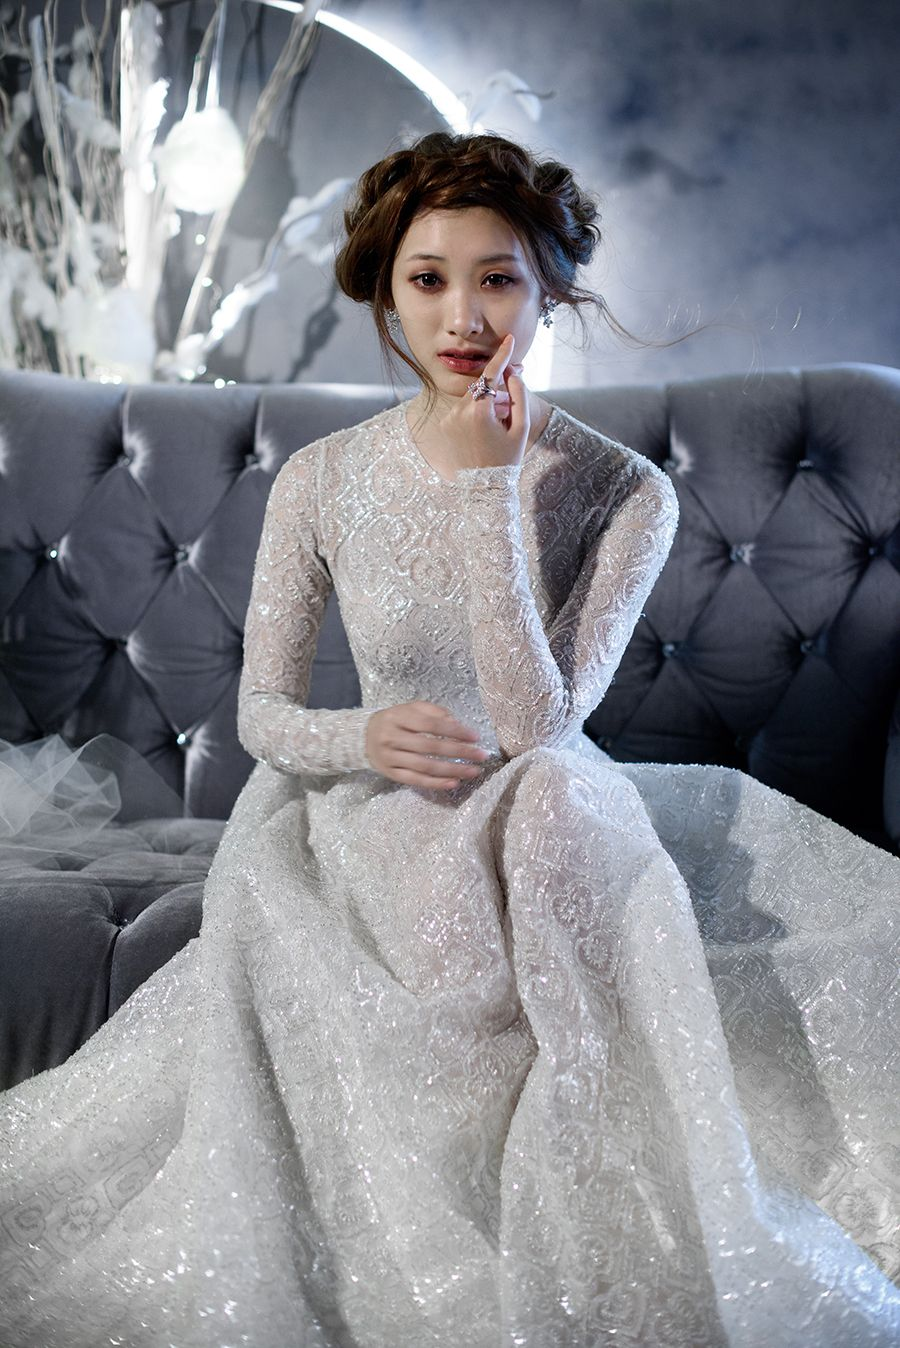 Winterus night wedding inspiration with paolo sebastian gowns